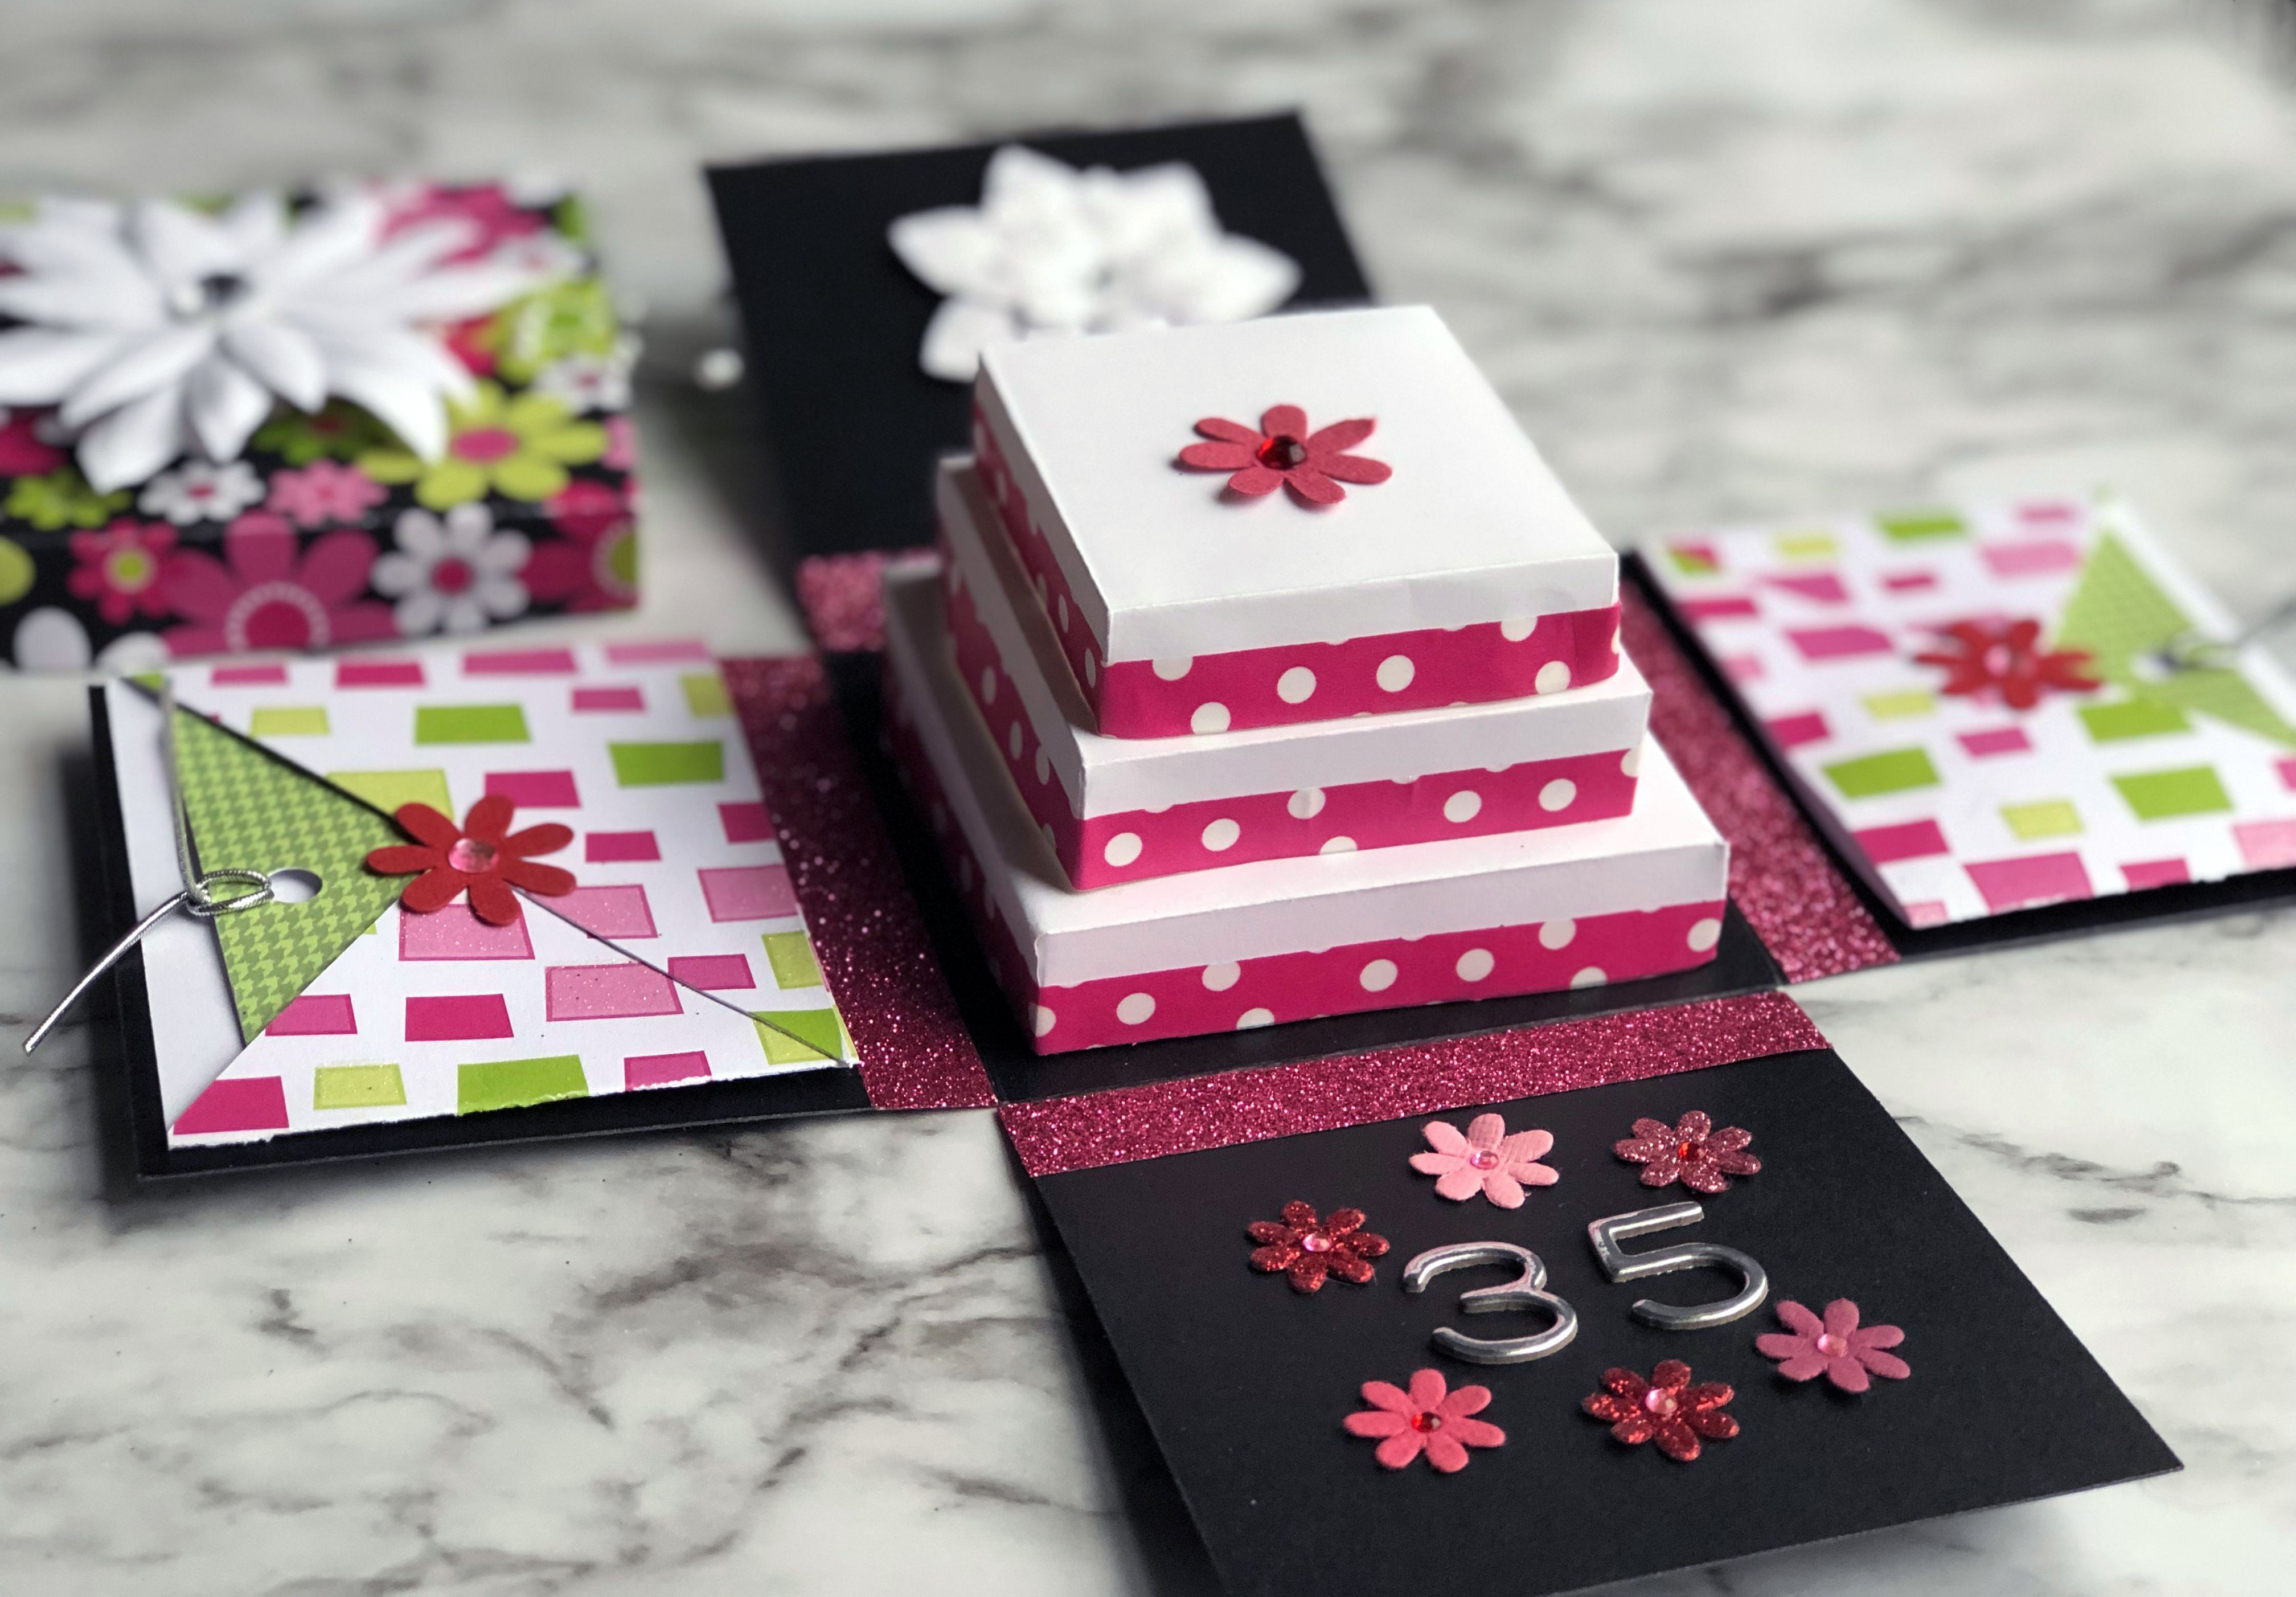 This Diy Exploding Box Greeting Card Tutorial Is A Fun Card Craft Project That Can Be Customized For Card Box Wedding Diy Exploding Box Card Box Cards Tutorial